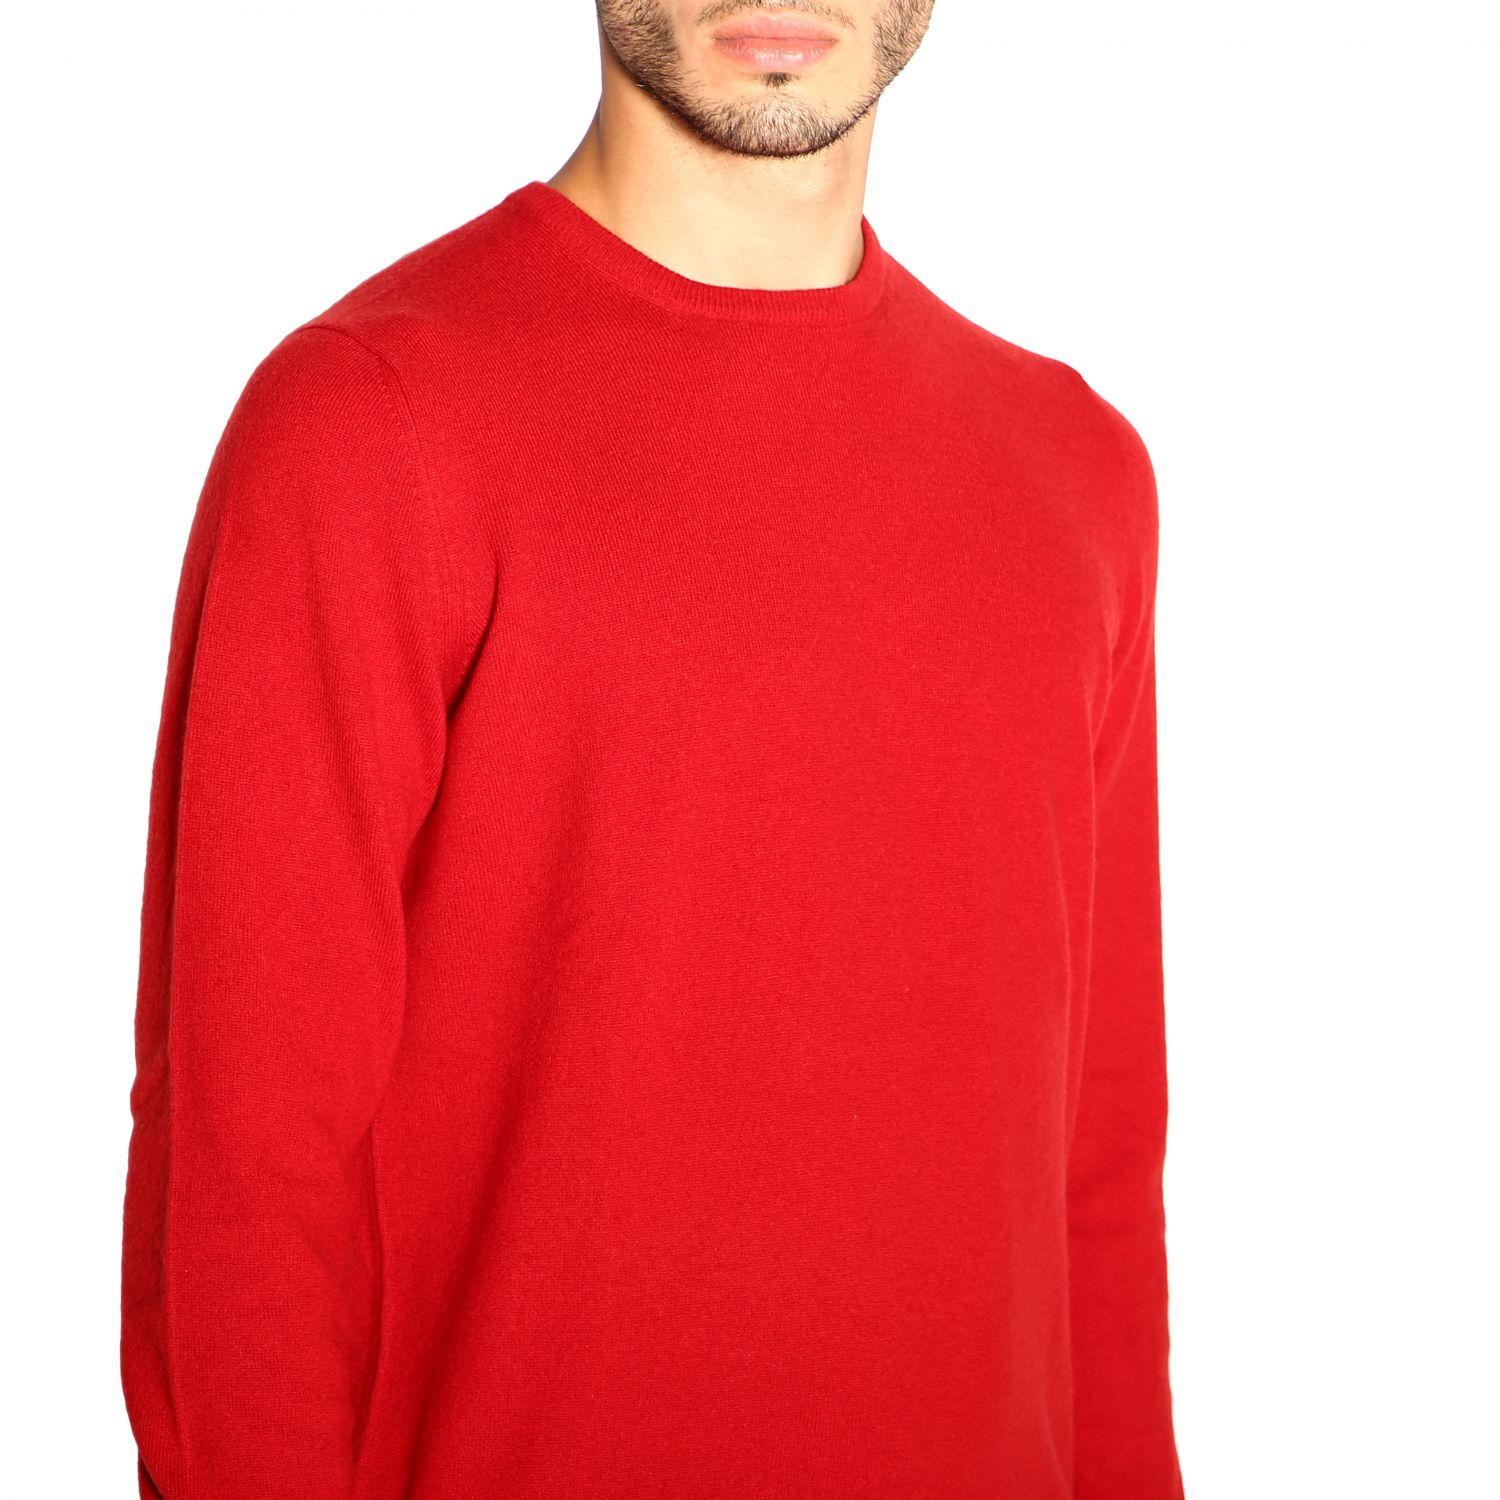 Sweater Barba Napoli: Sweater men Barba Napoli red 5